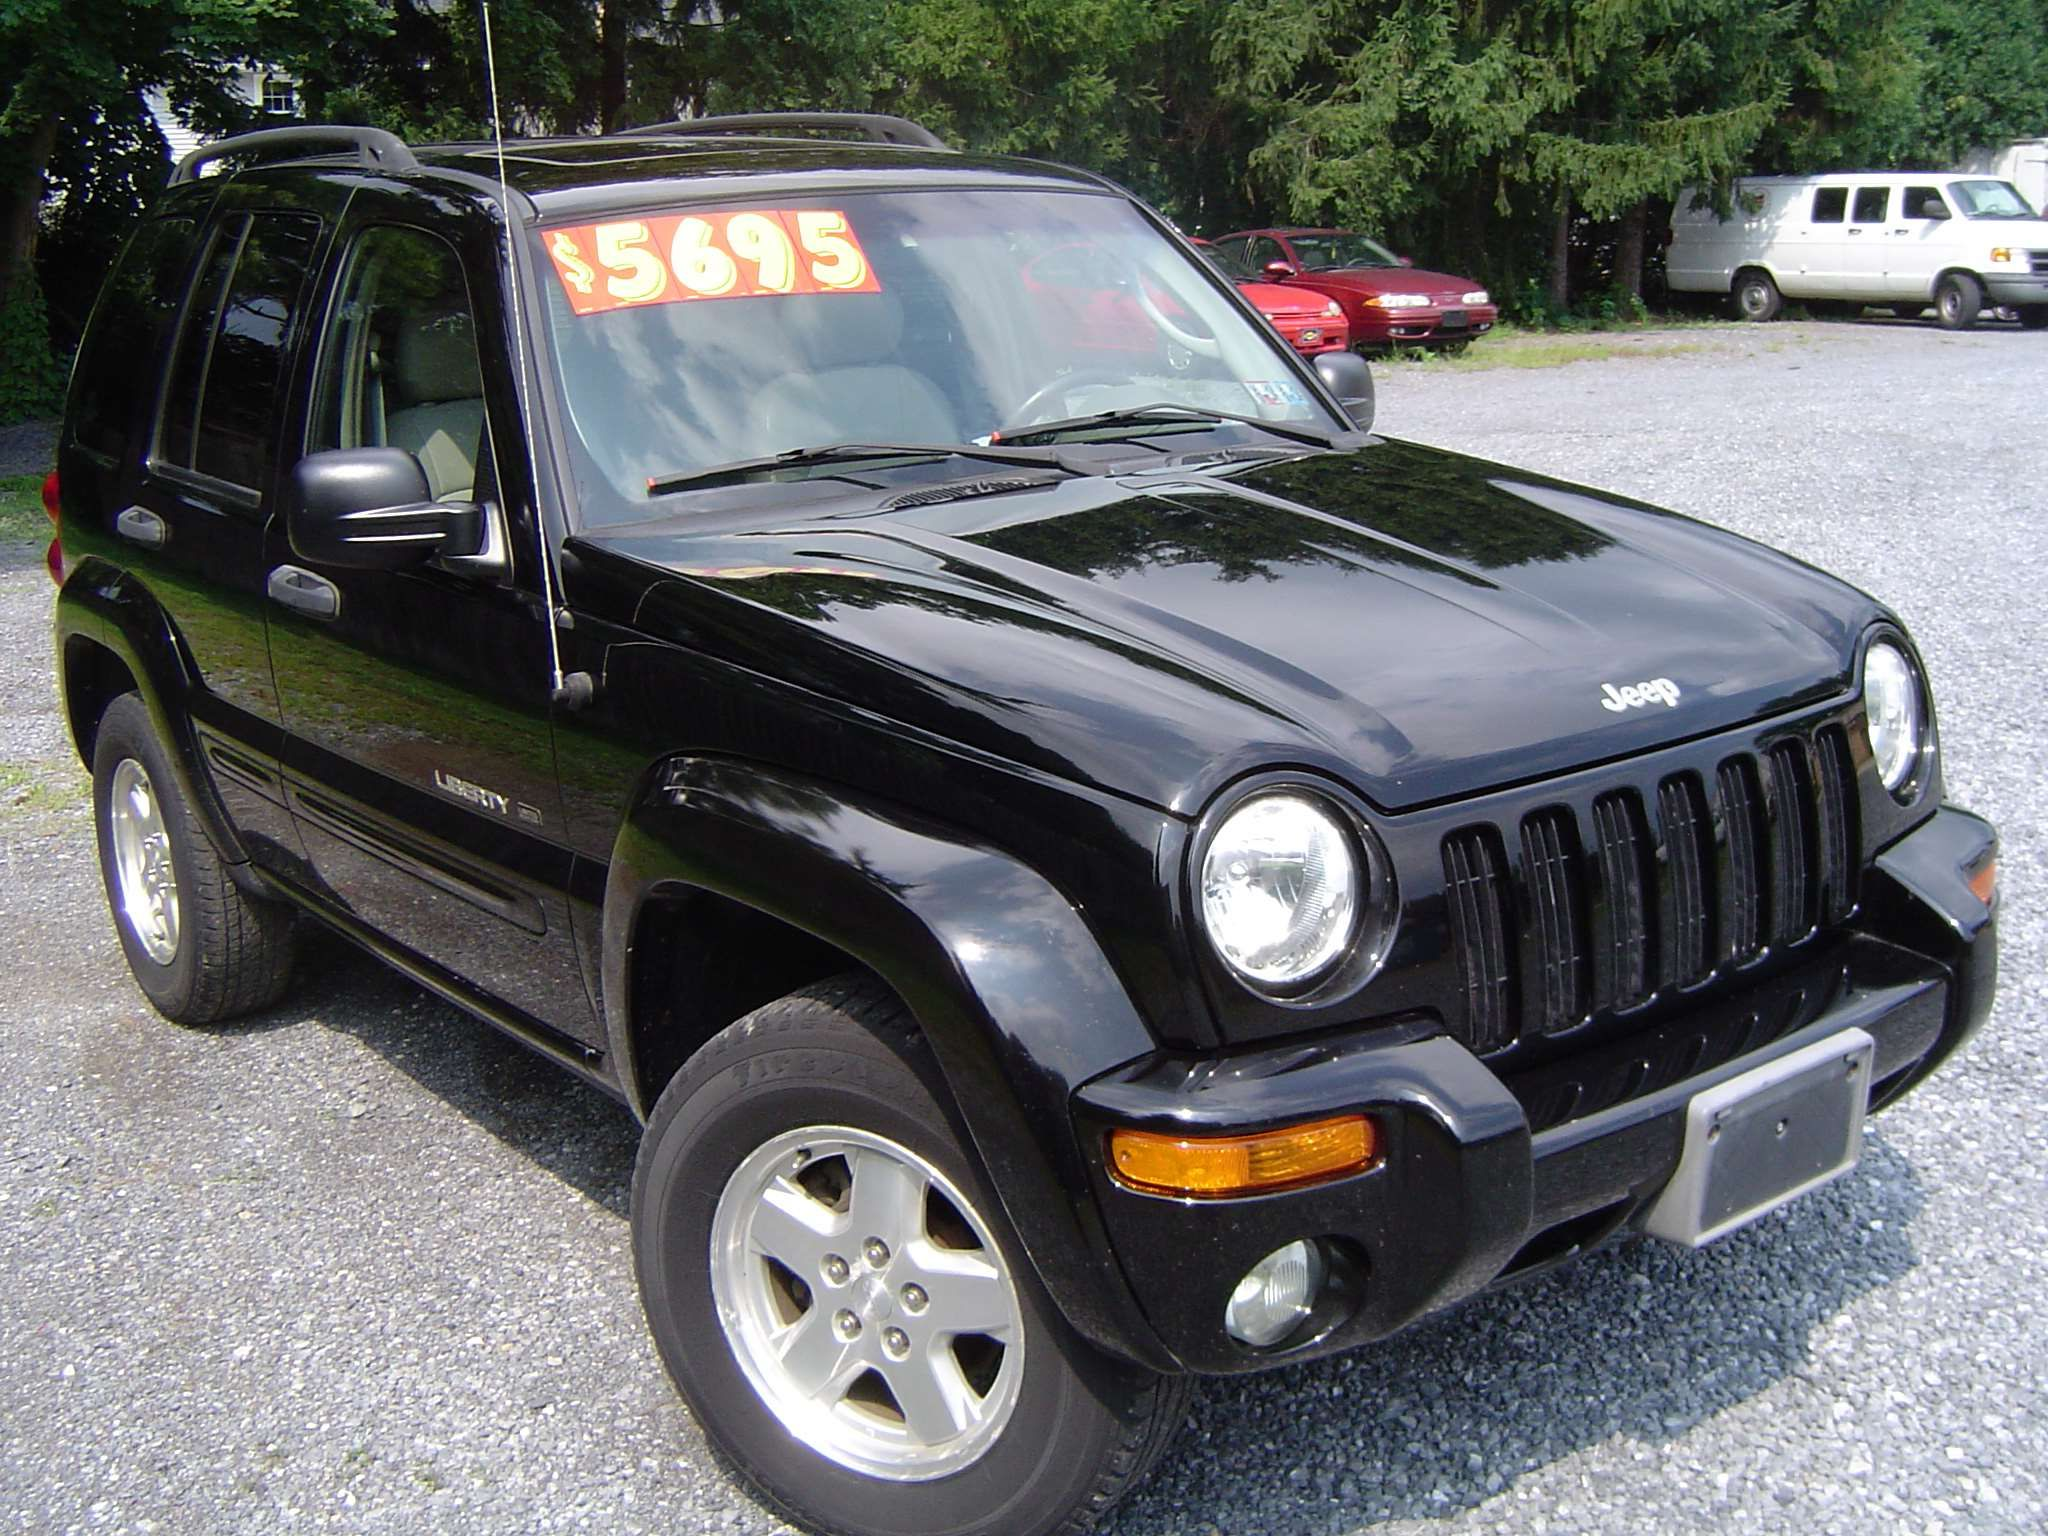 2003 jeep liberty 4dr limited 4wd price $11,983 body style 4-door